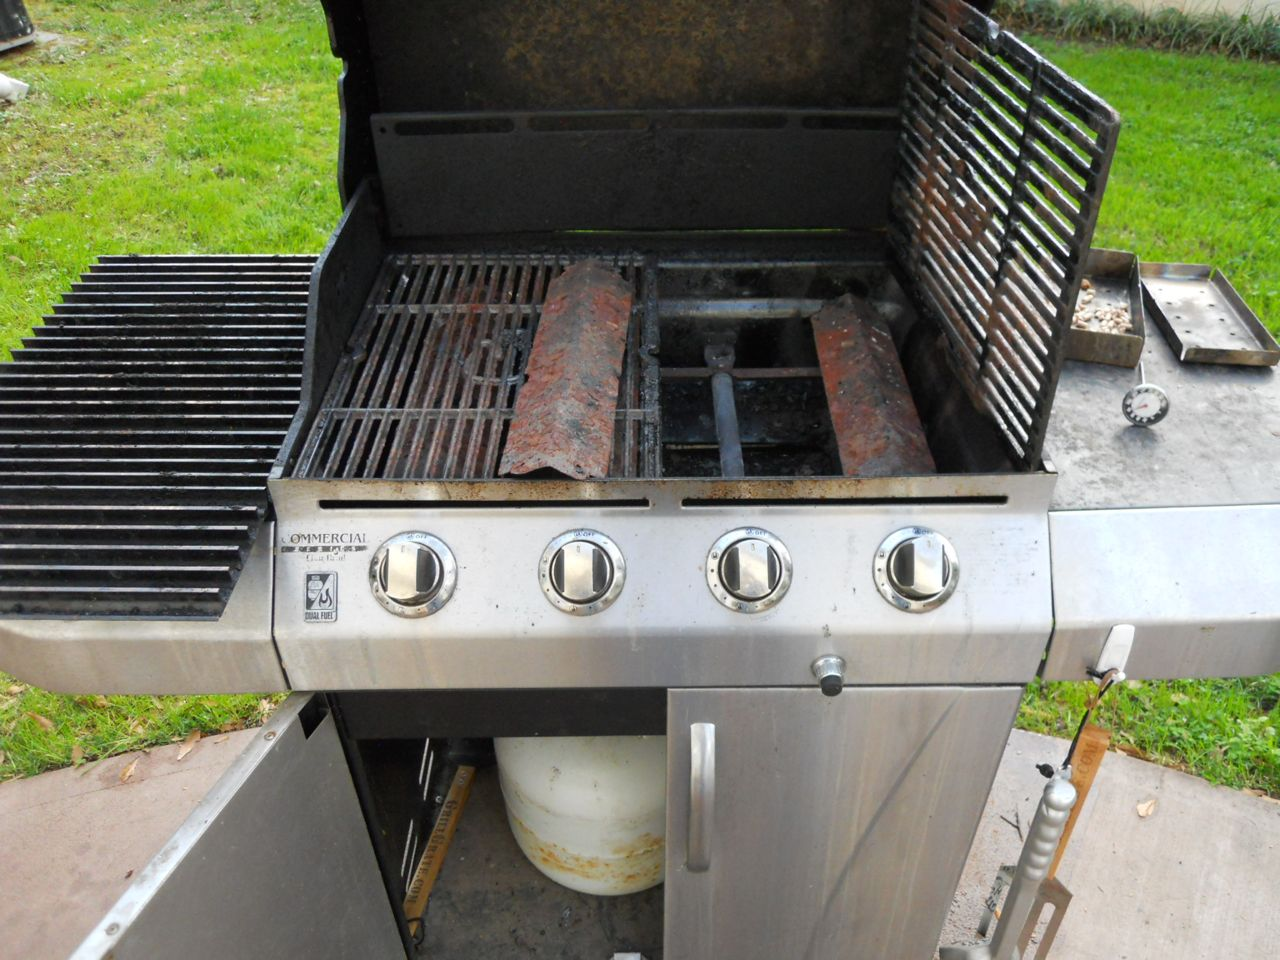 grilling grate with grillgrate the sorry state of my grills but i 39 m still grilling grate. Black Bedroom Furniture Sets. Home Design Ideas